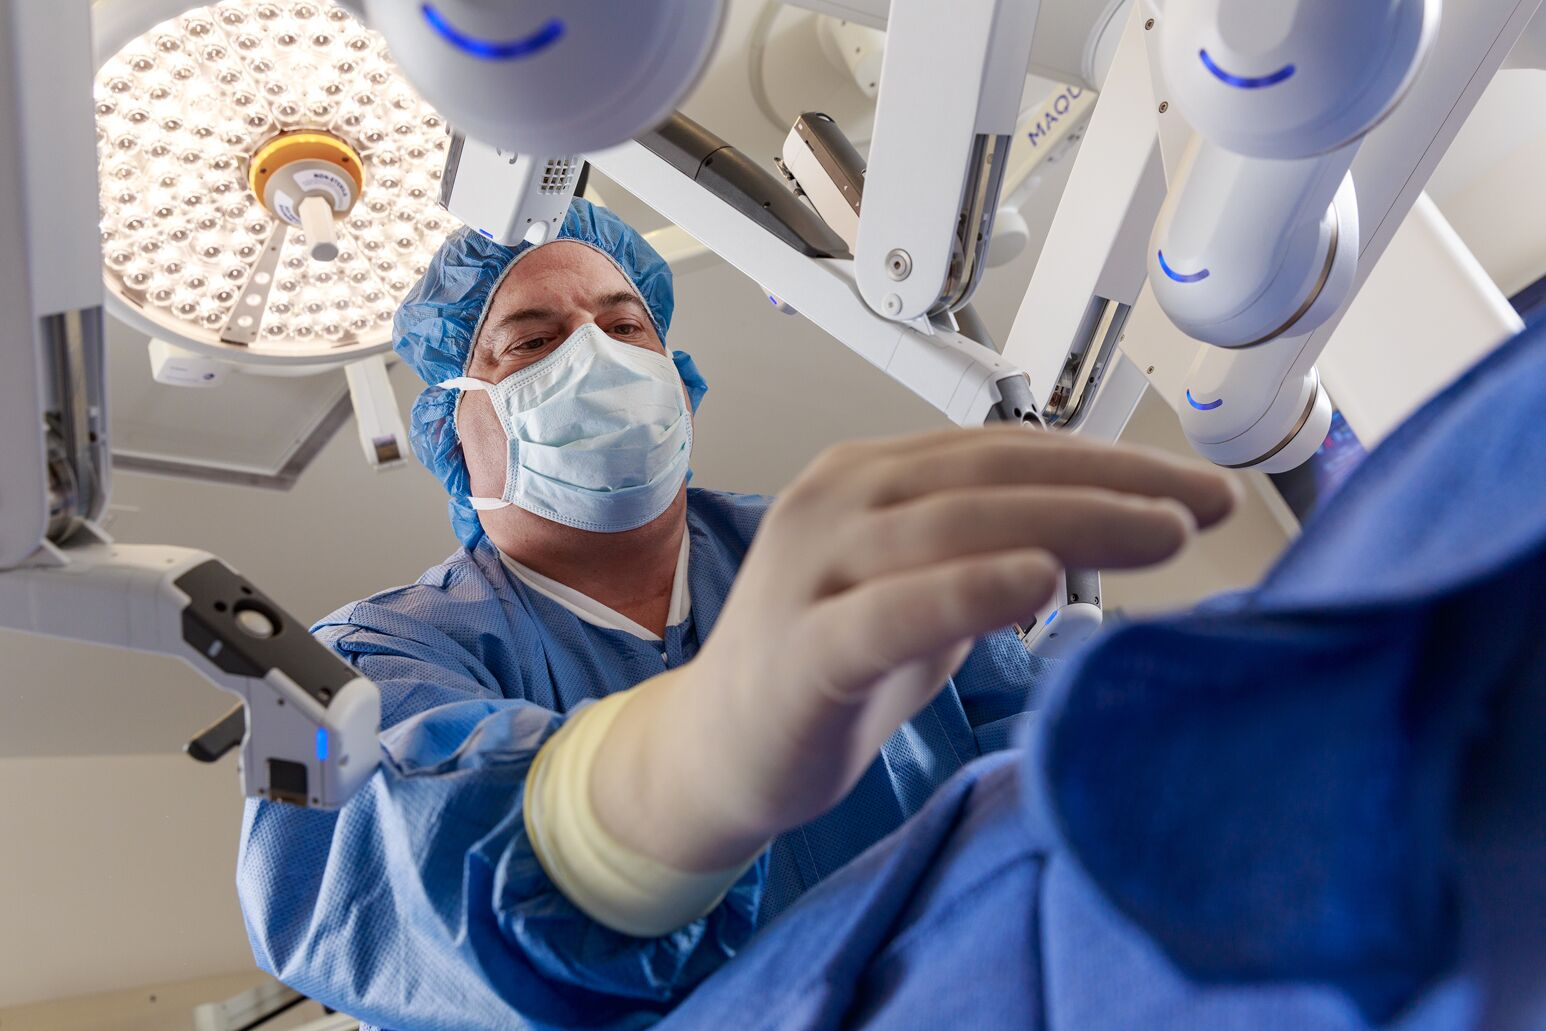 An image of a doctor in surgery.